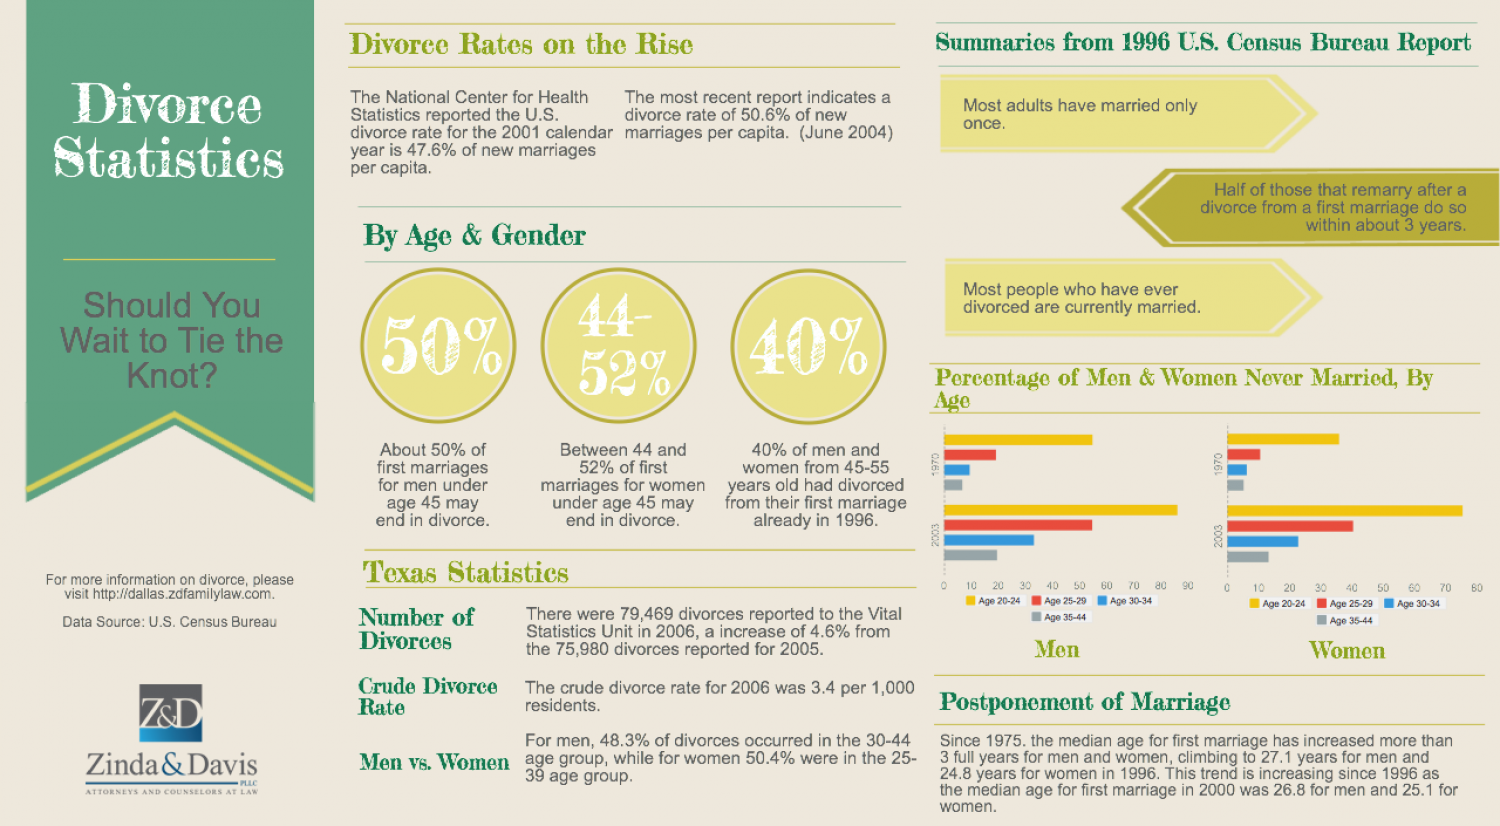 Divorce Statistics: Should You Wait To Tie The Knot? Infographic